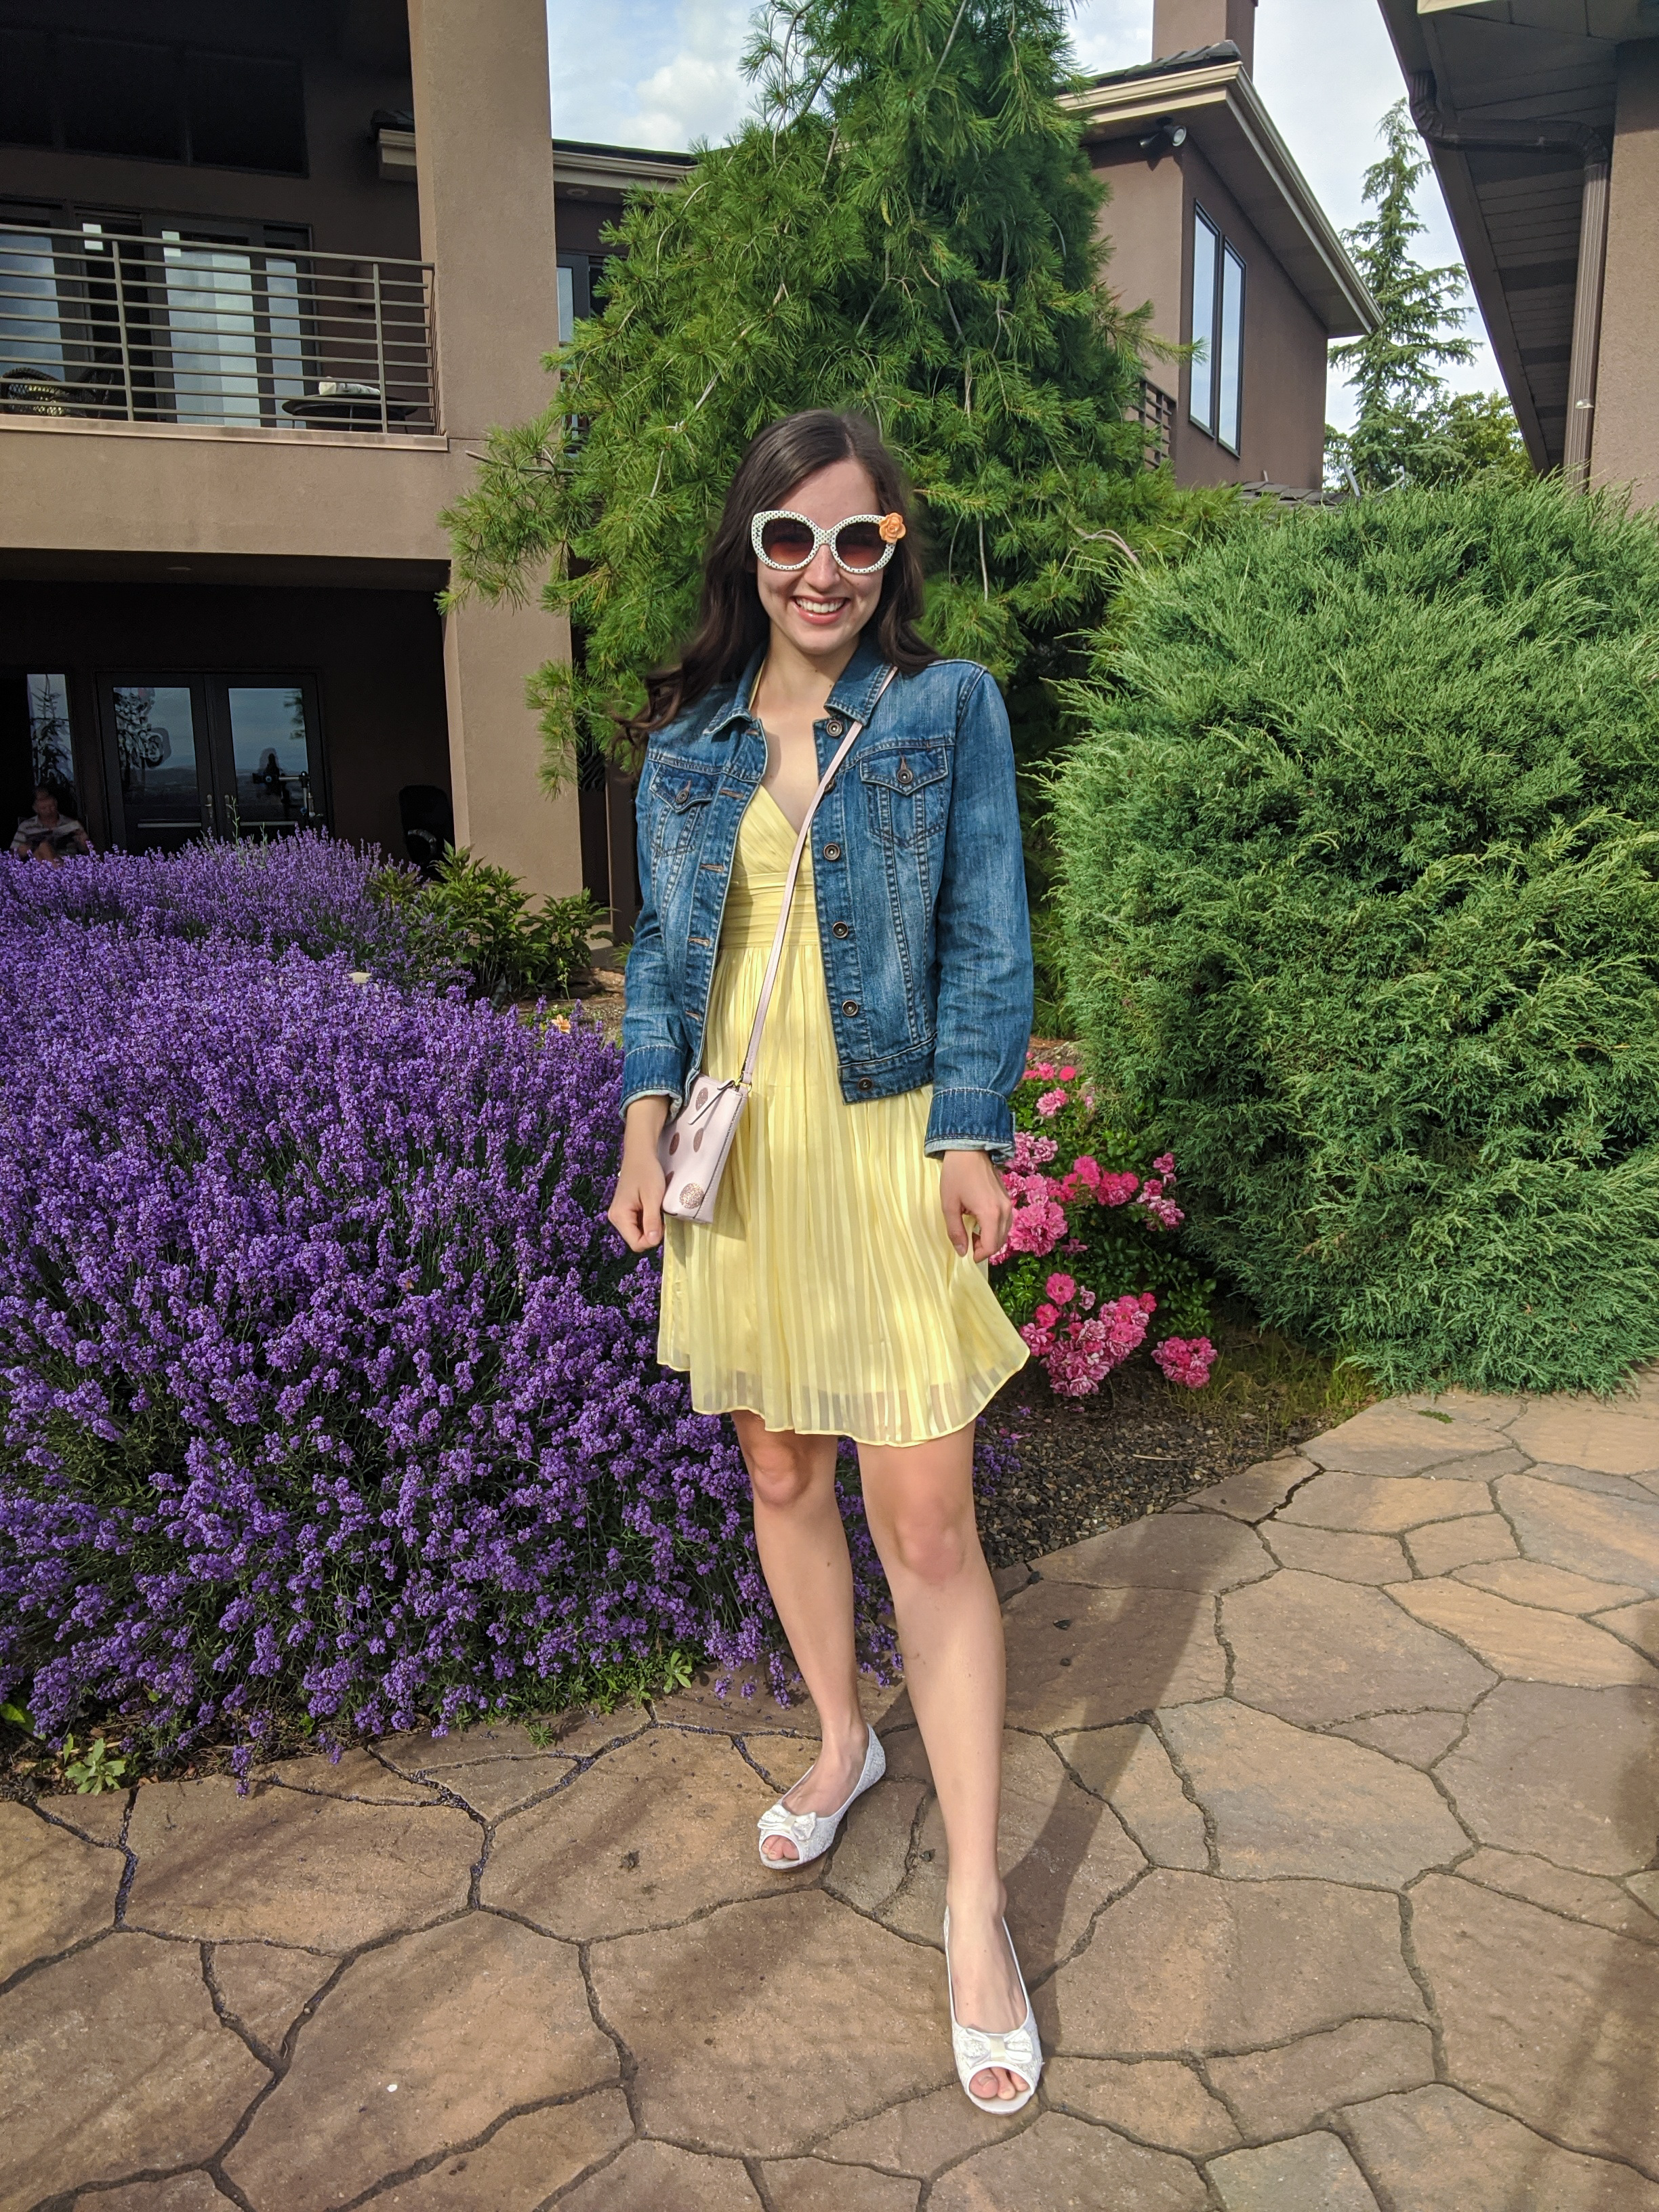 yellow-sundress-denim-jacket-girly-outfit-summer-style